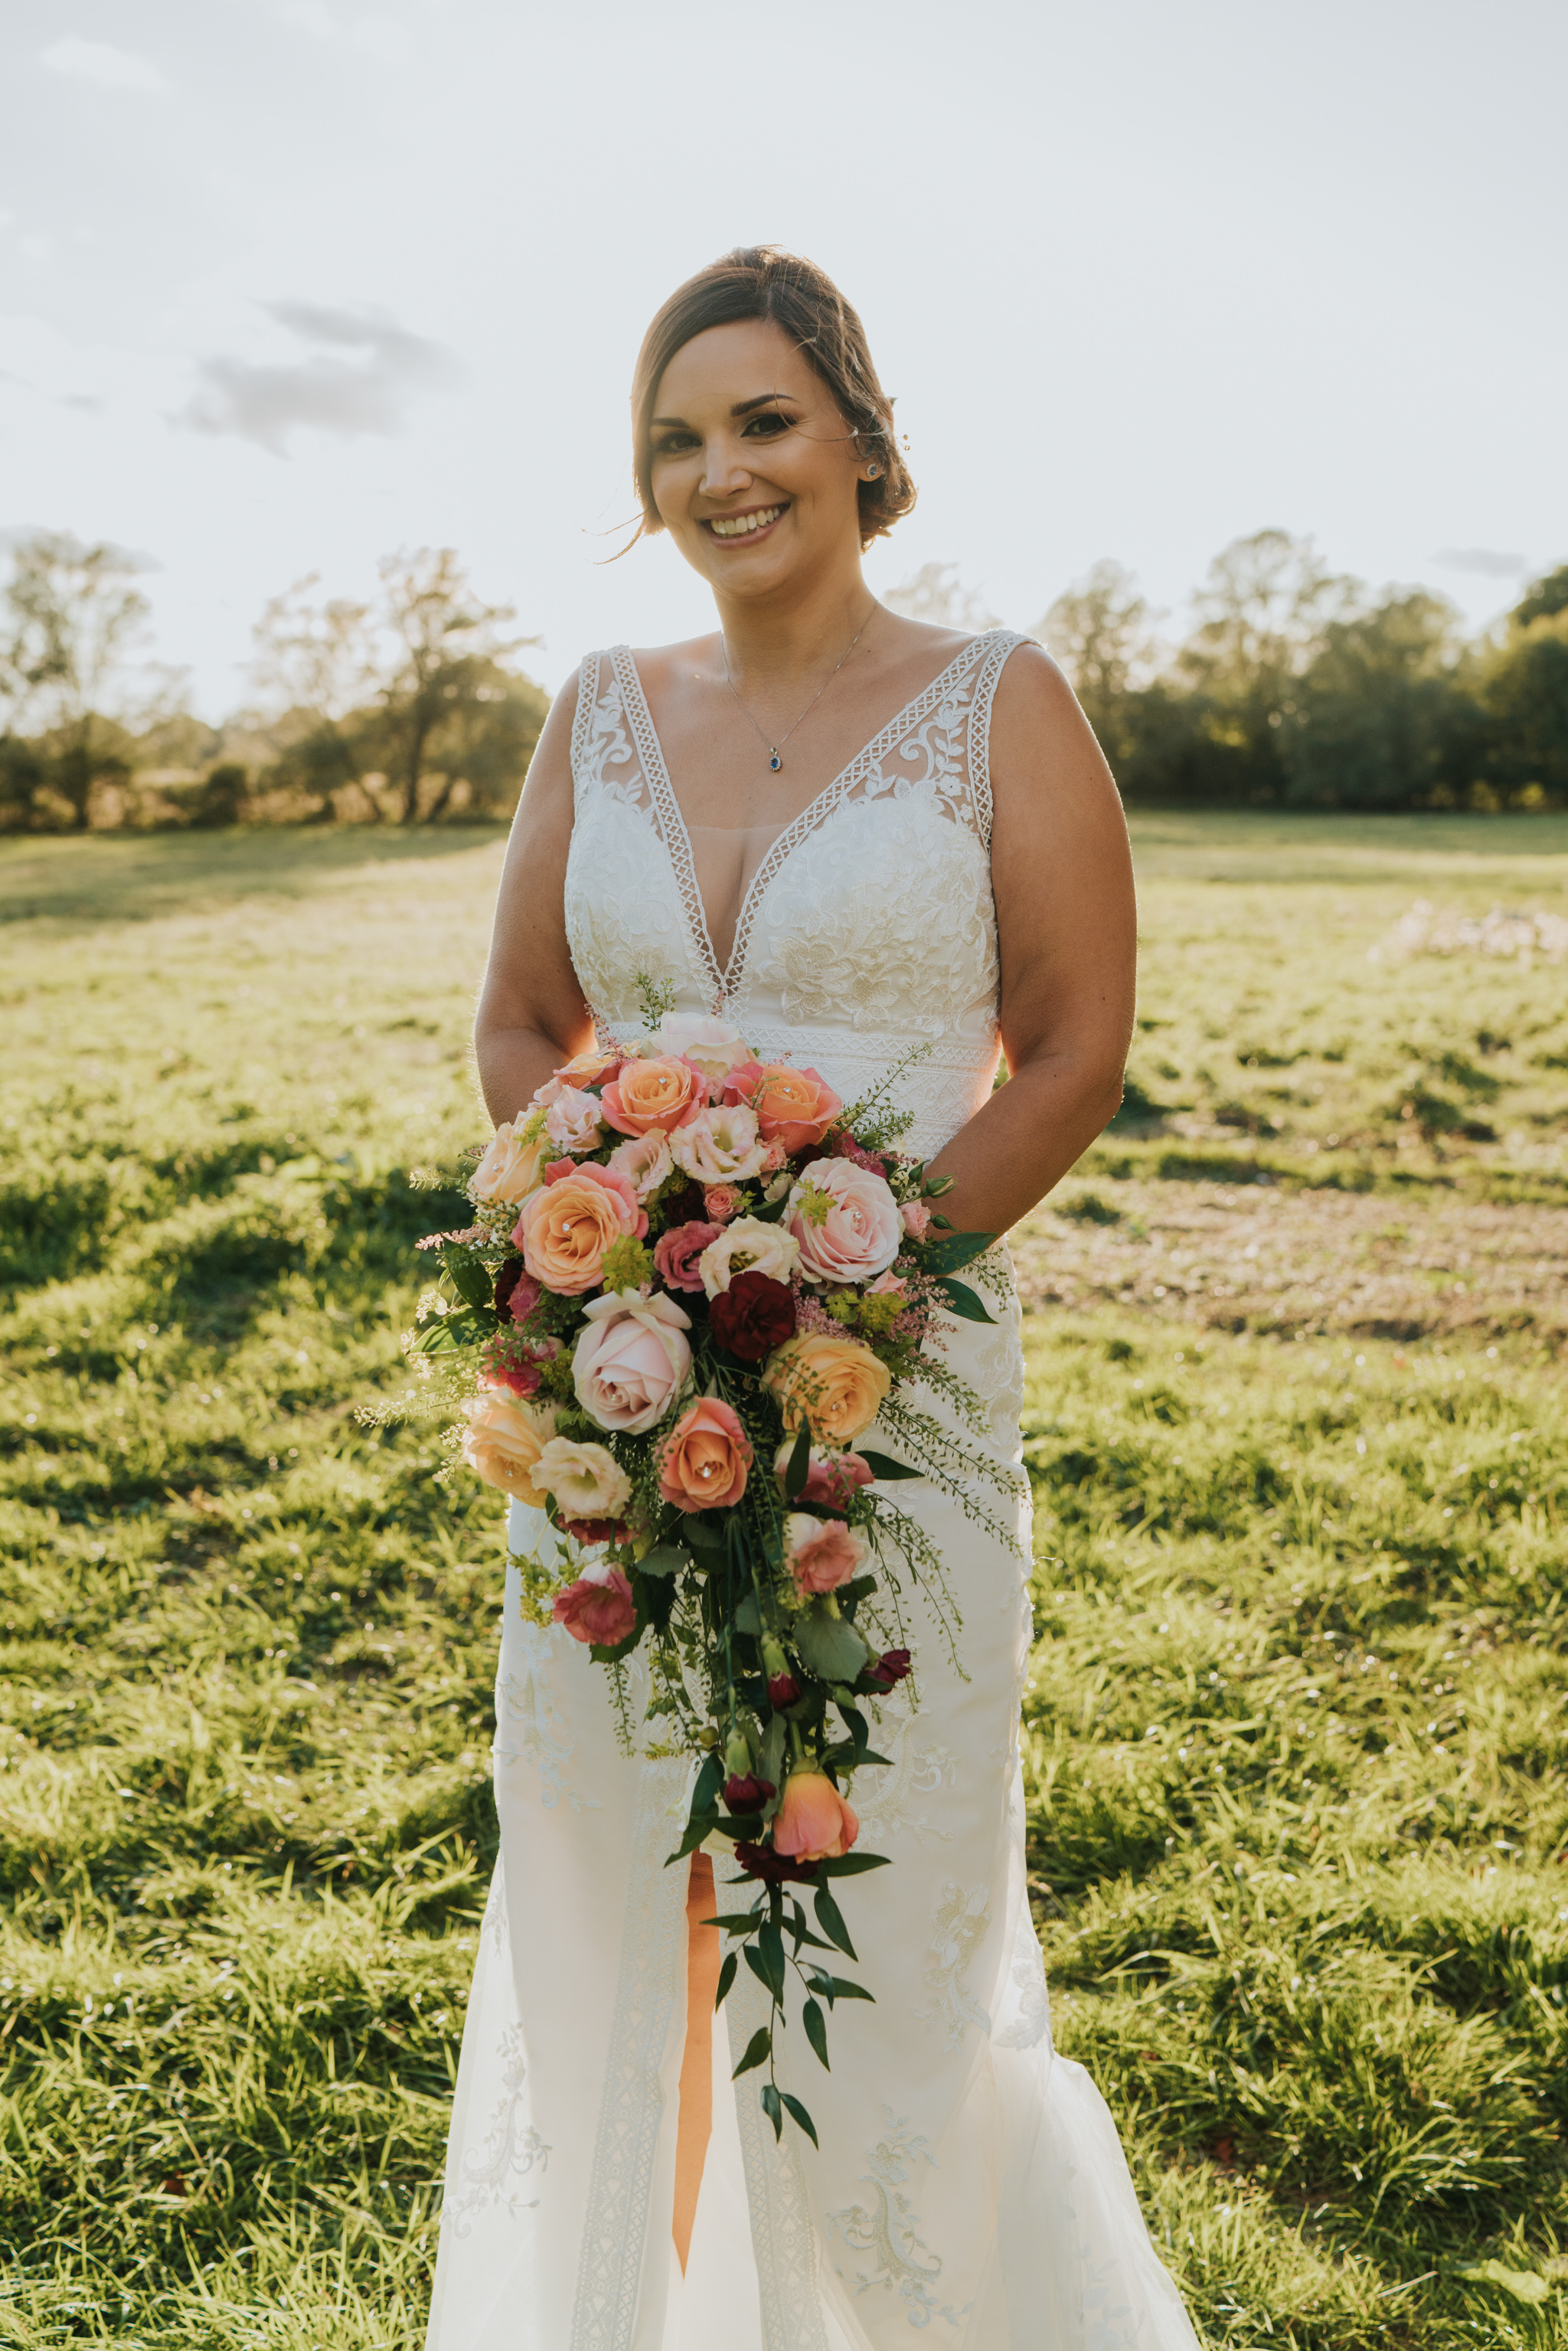 sophie-mark-newland-hall-boho-wedding-grace-elizanbeth-alternative-wedding-photographer-colchester-essex-norfolk-suffolk-devon (134 of 161).jpg